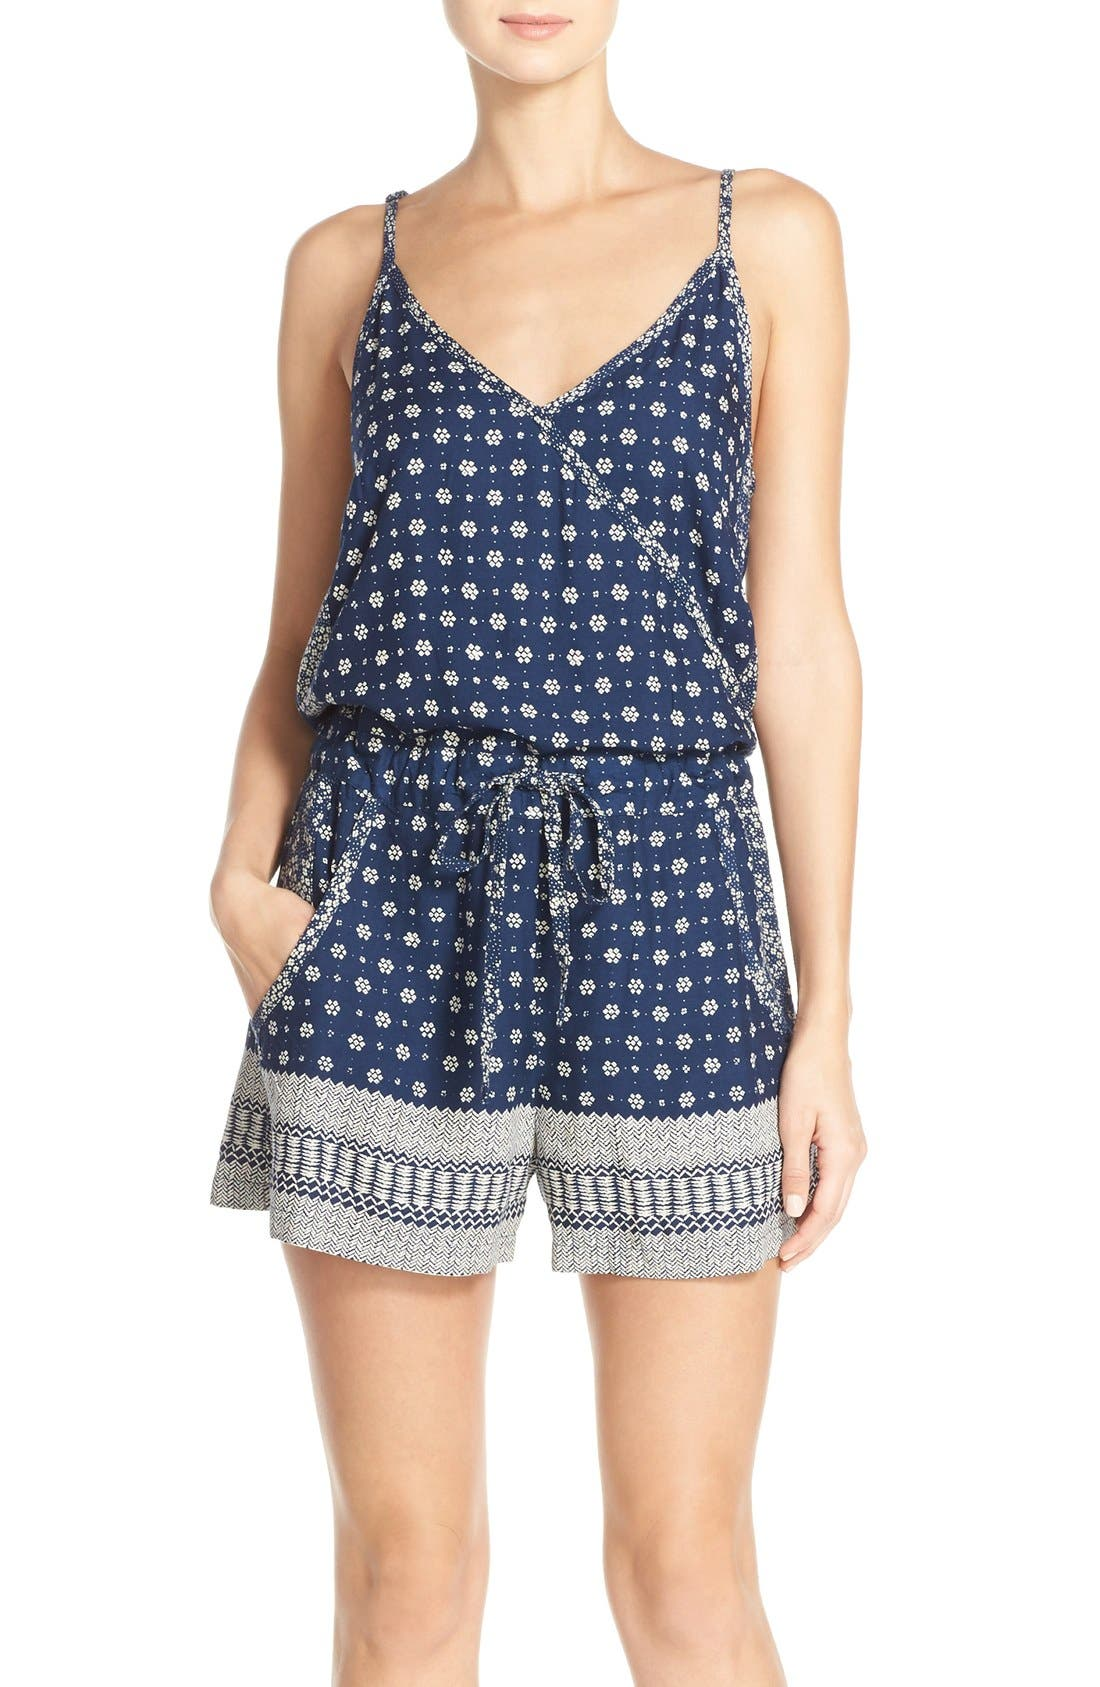 Alternate Image 1 Selected - French Connection 'Castaway' Floral Print Romper